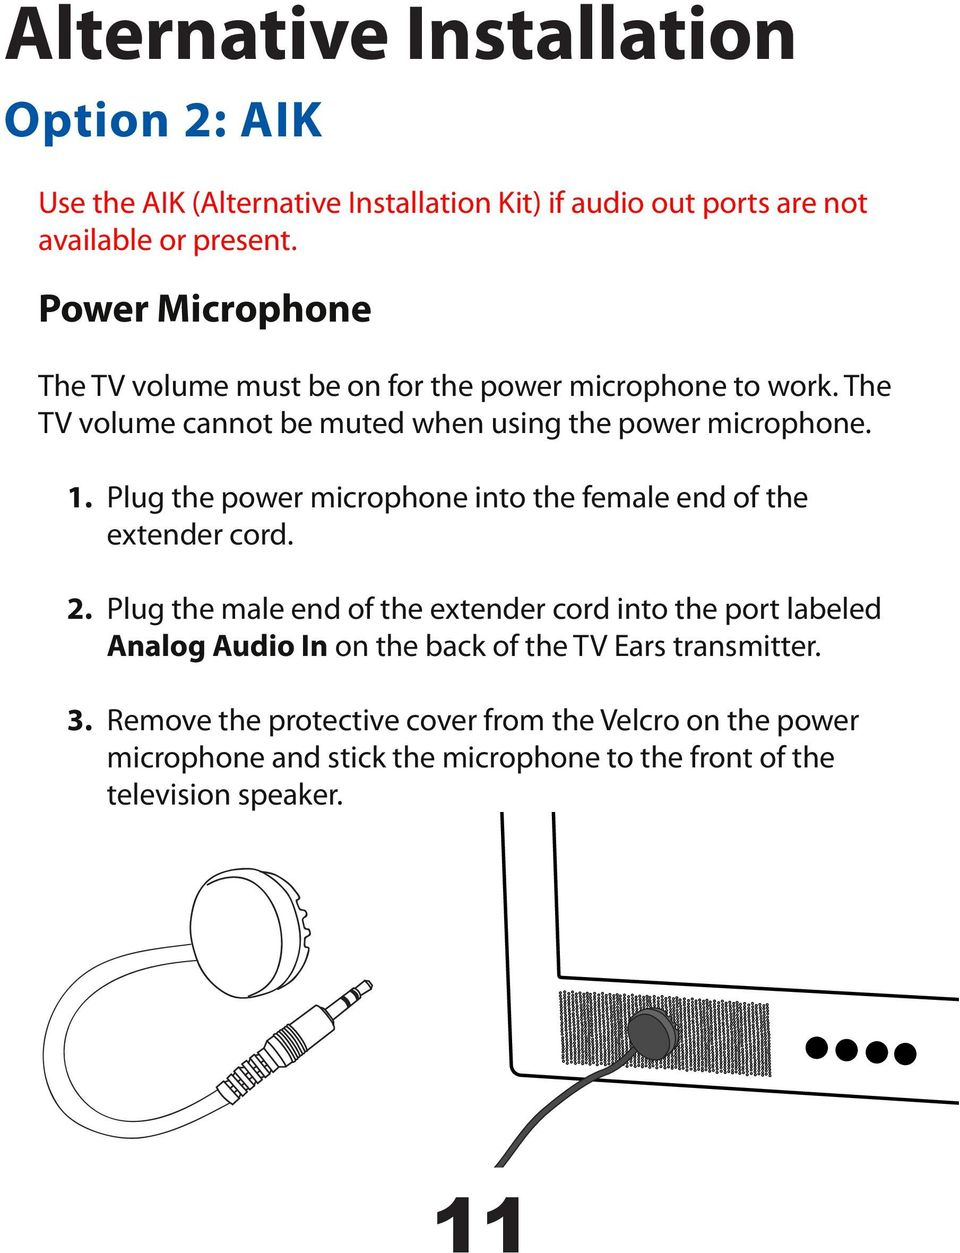 Plug the power microphone into the female end of the extender cord. 2.